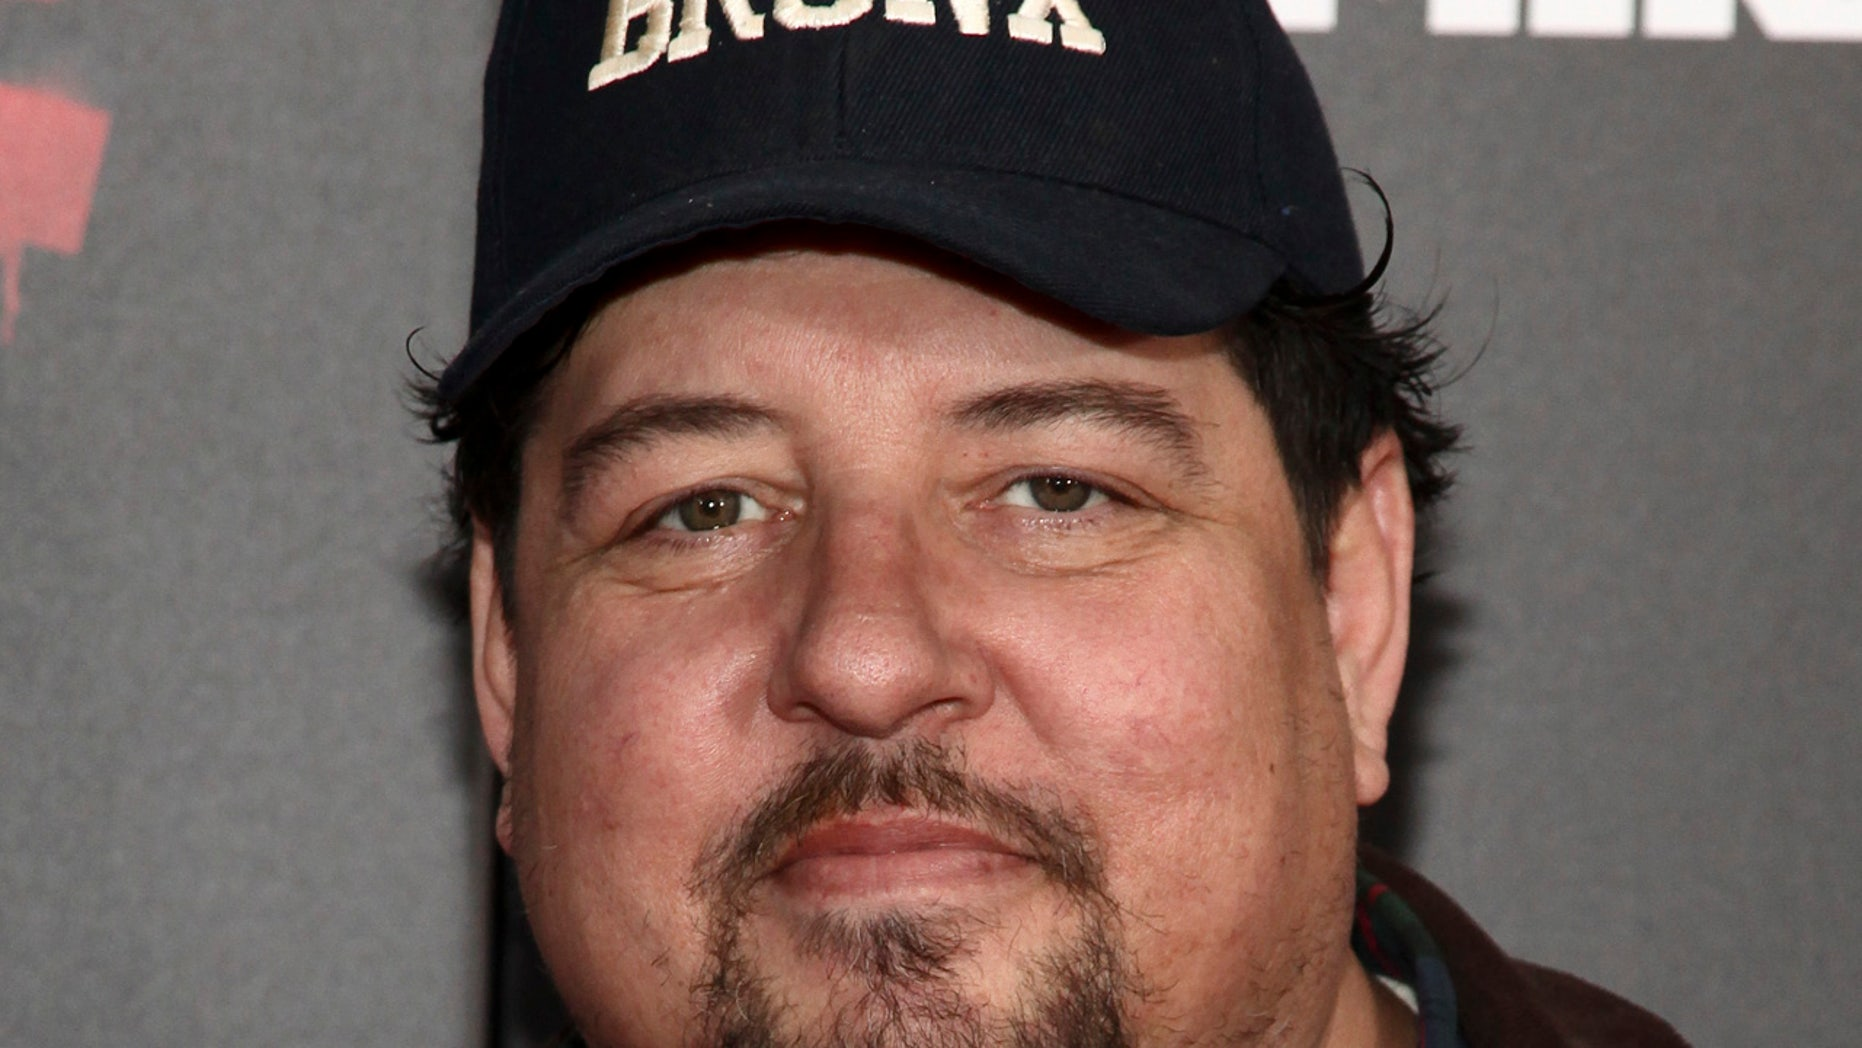 """FILE - In this Nov. 15, 2016, file photo, Joey Boots attends the premiere of """"Bad Santa 2"""" in New York."""